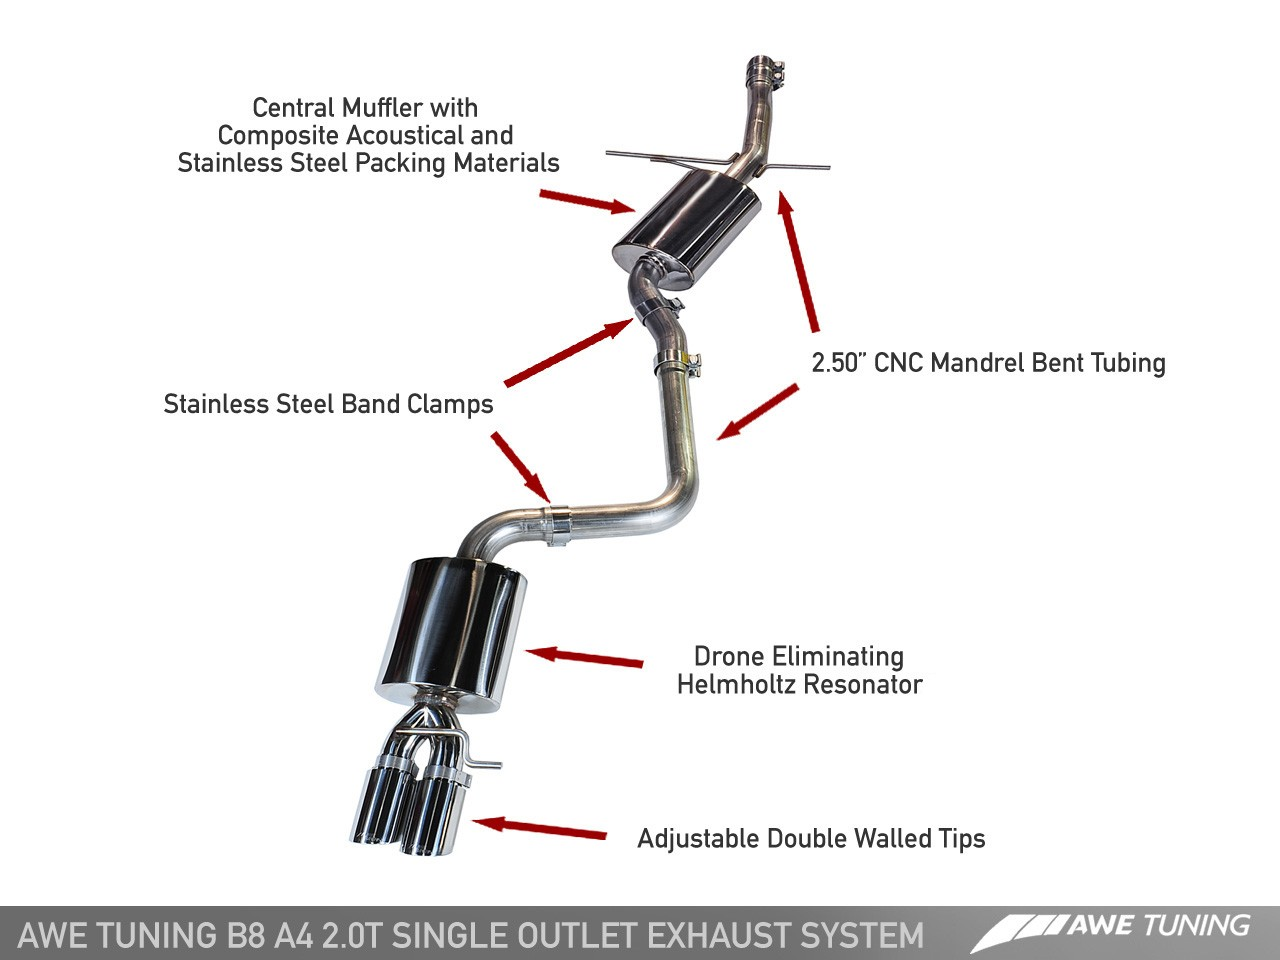 Awe Tuning B8 5 A4 2 0t Exhaust Systems